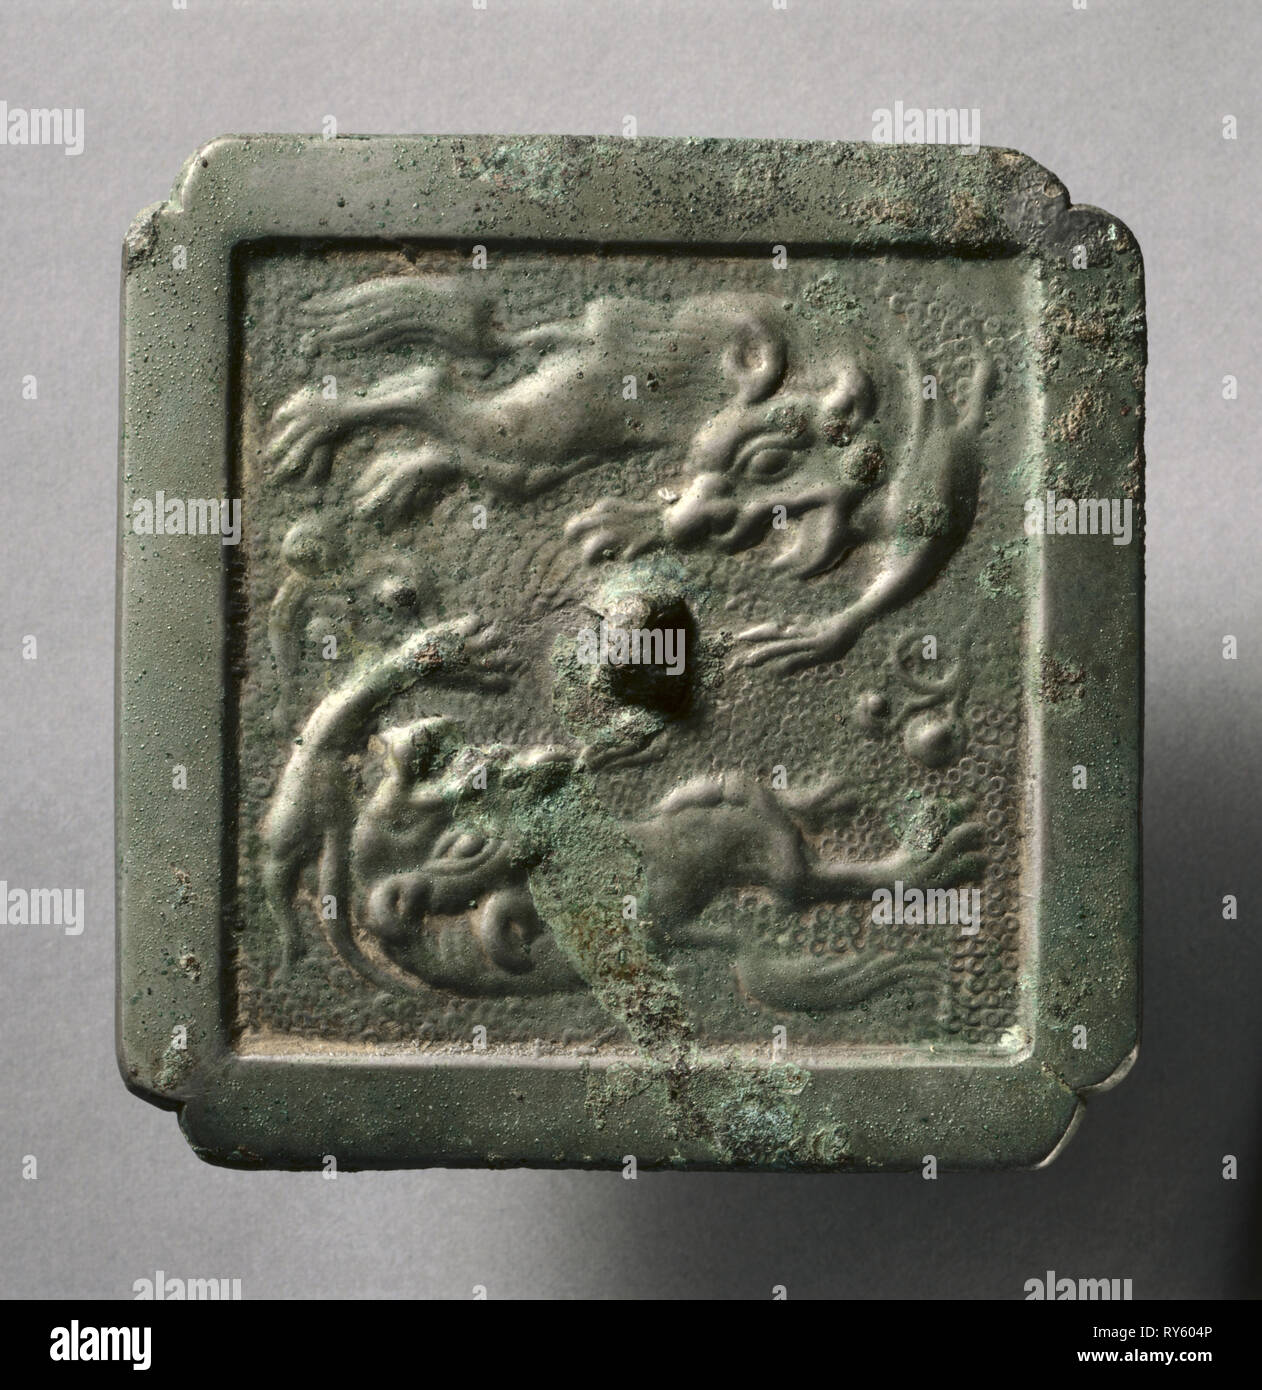 Cruciform Mirror with Two Lions, late 8th-early 9th century. China, Tang dynasty (618-907). Bronze; overall: 0.7 x 10.5 cm (1/4 x 4 1/8 in.); rim: 0.4 cm (3/16 in - Stock Image